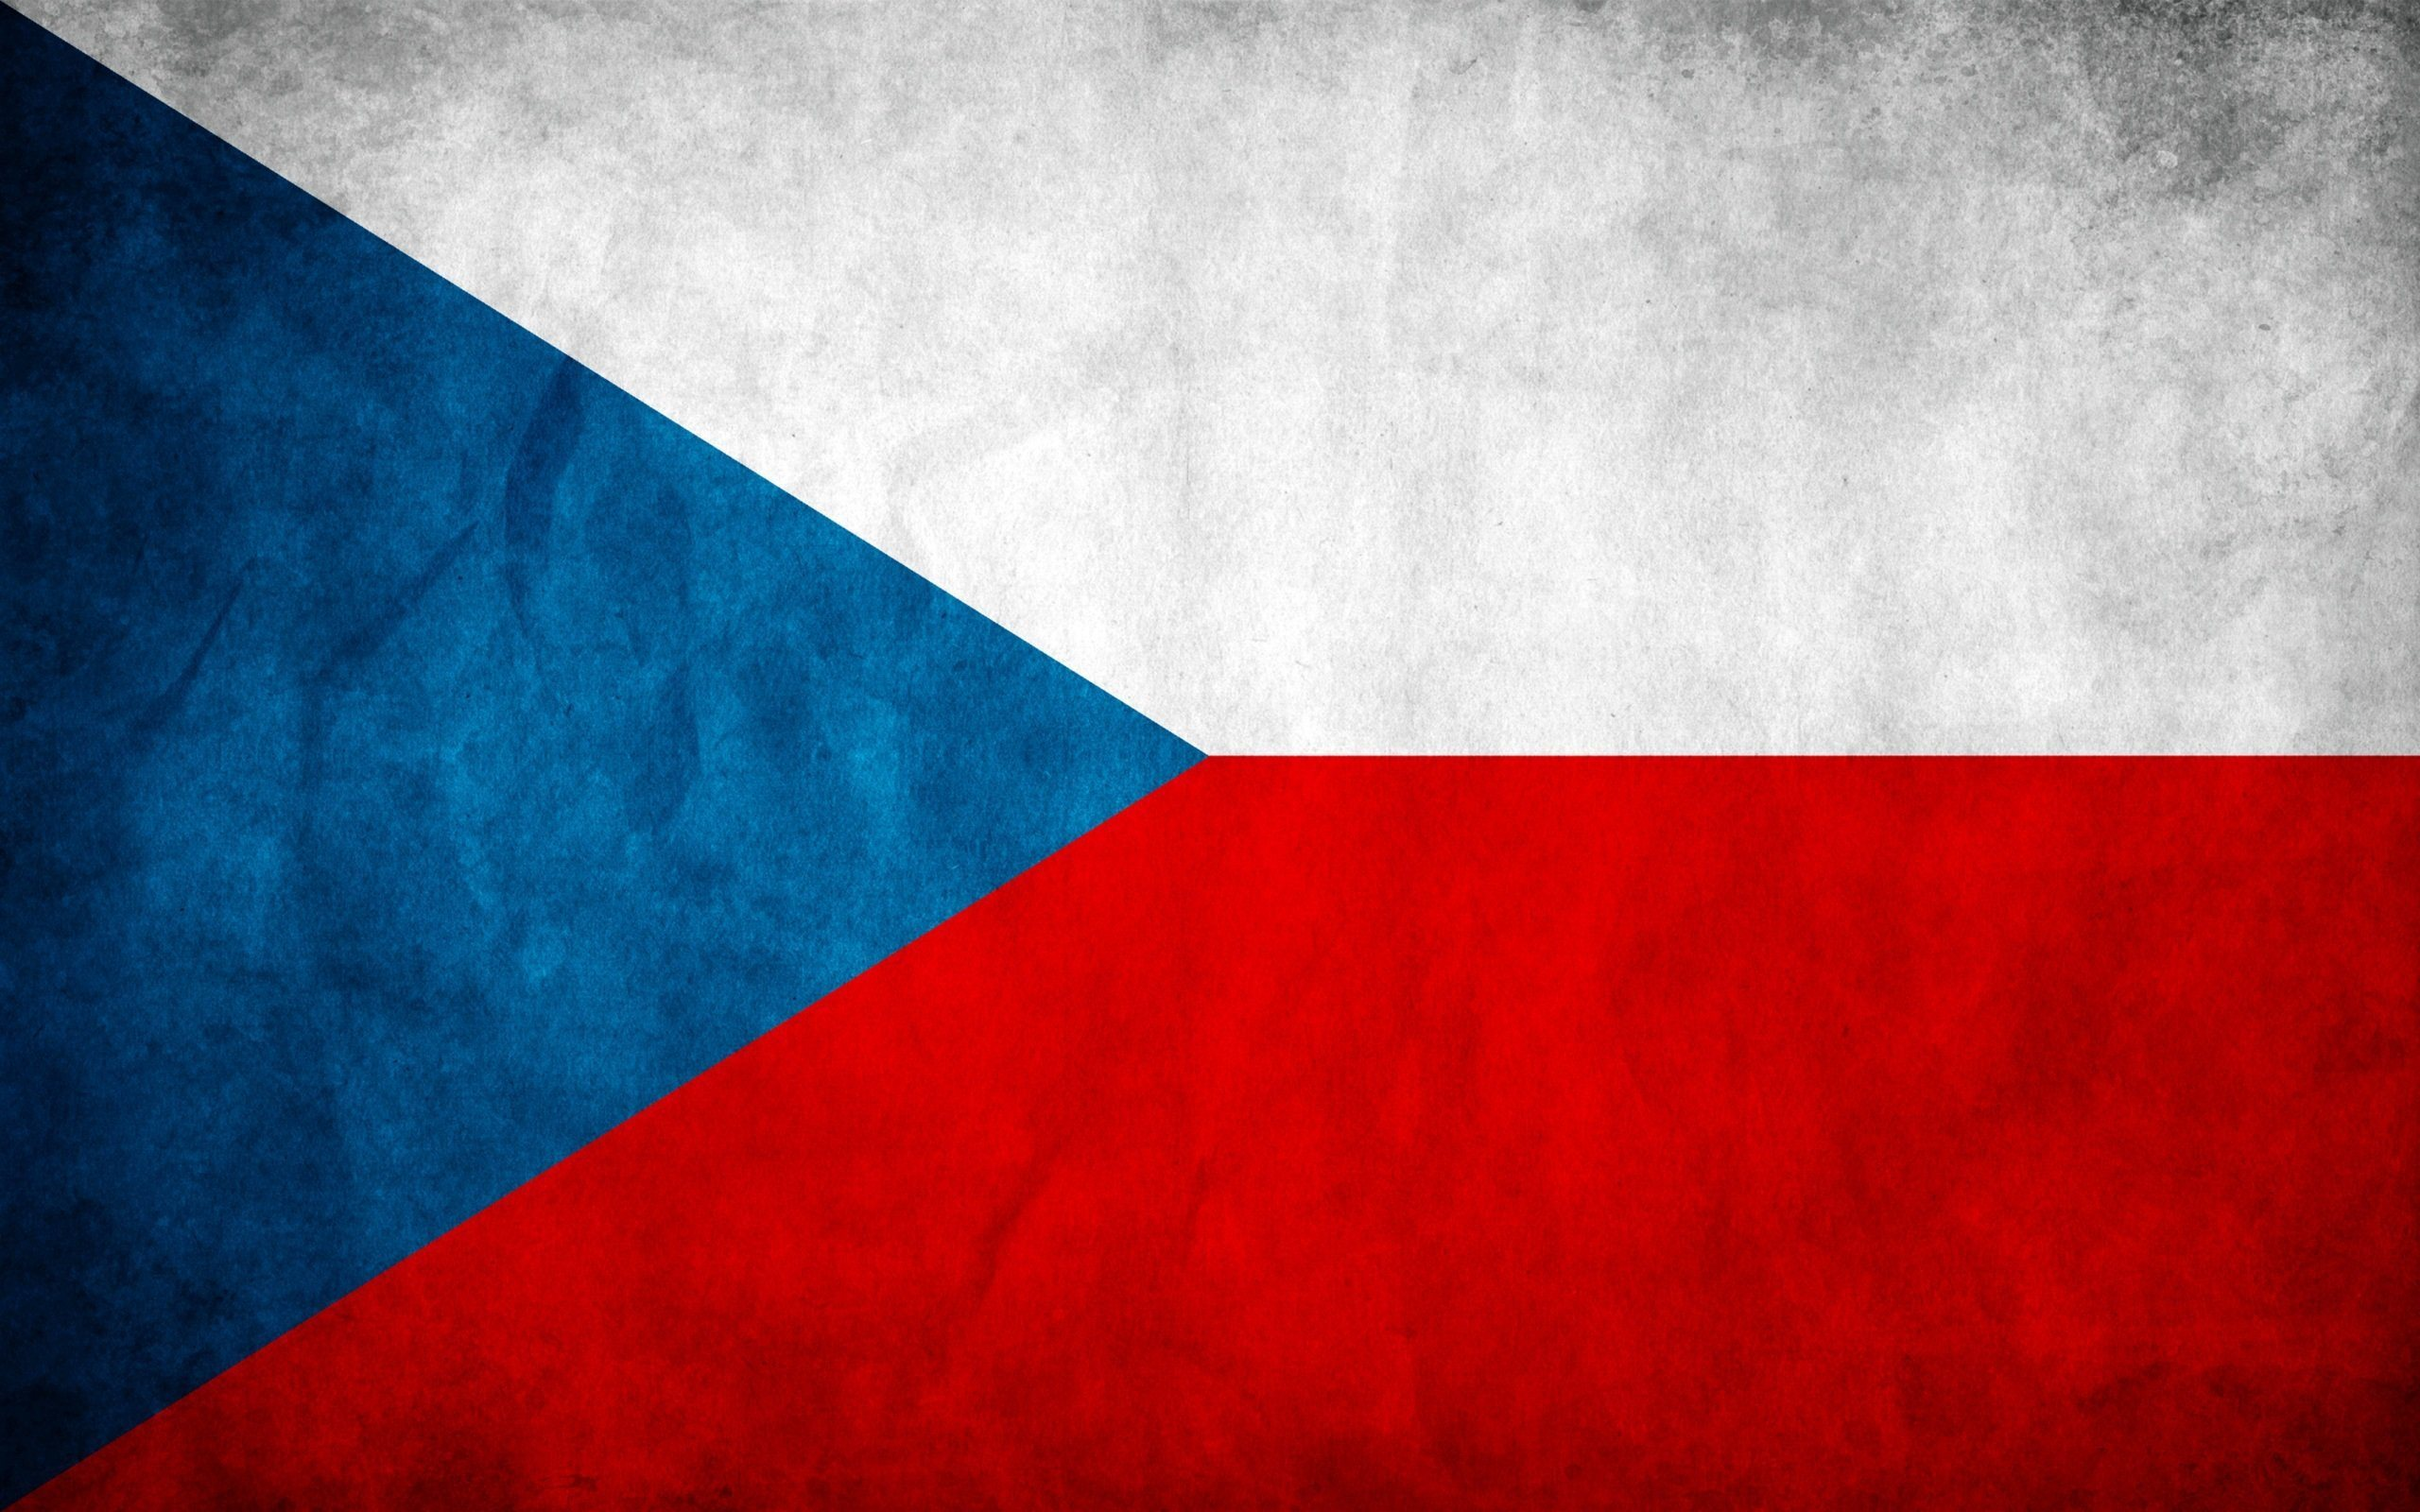 Download wallpapers Czech Republic flag Czech flag wall texture 2560x1600